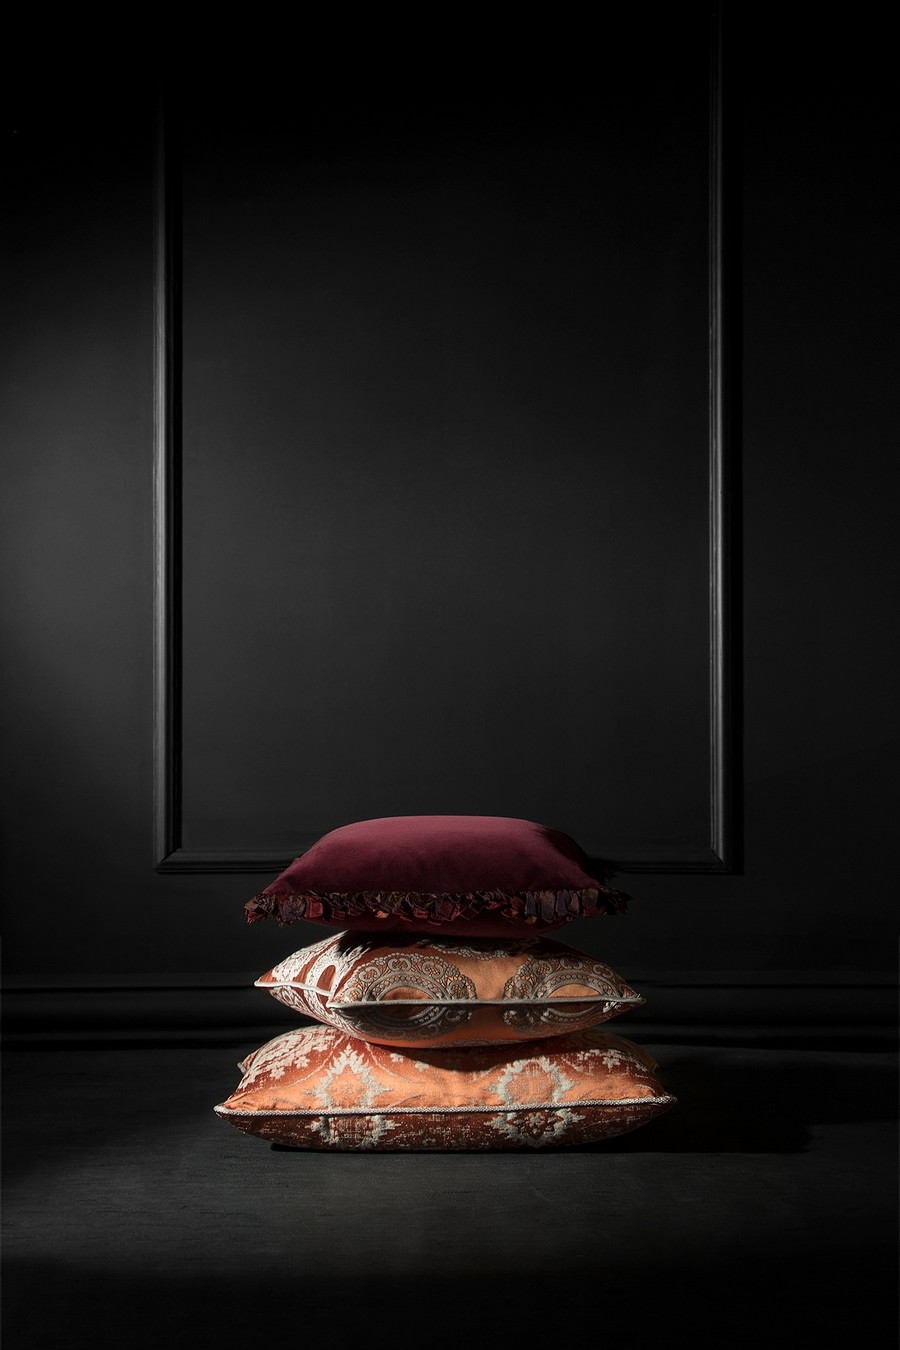 Trend Report - Incorporate Velvet Into Your Home Decor In A Stylish Way trend report Trend Report – Incorporate Velvet Into Your Home Decor In A Stylish Way Trend Report Incorporate Velvet Into Your Home Decor In A Stylish Way 9